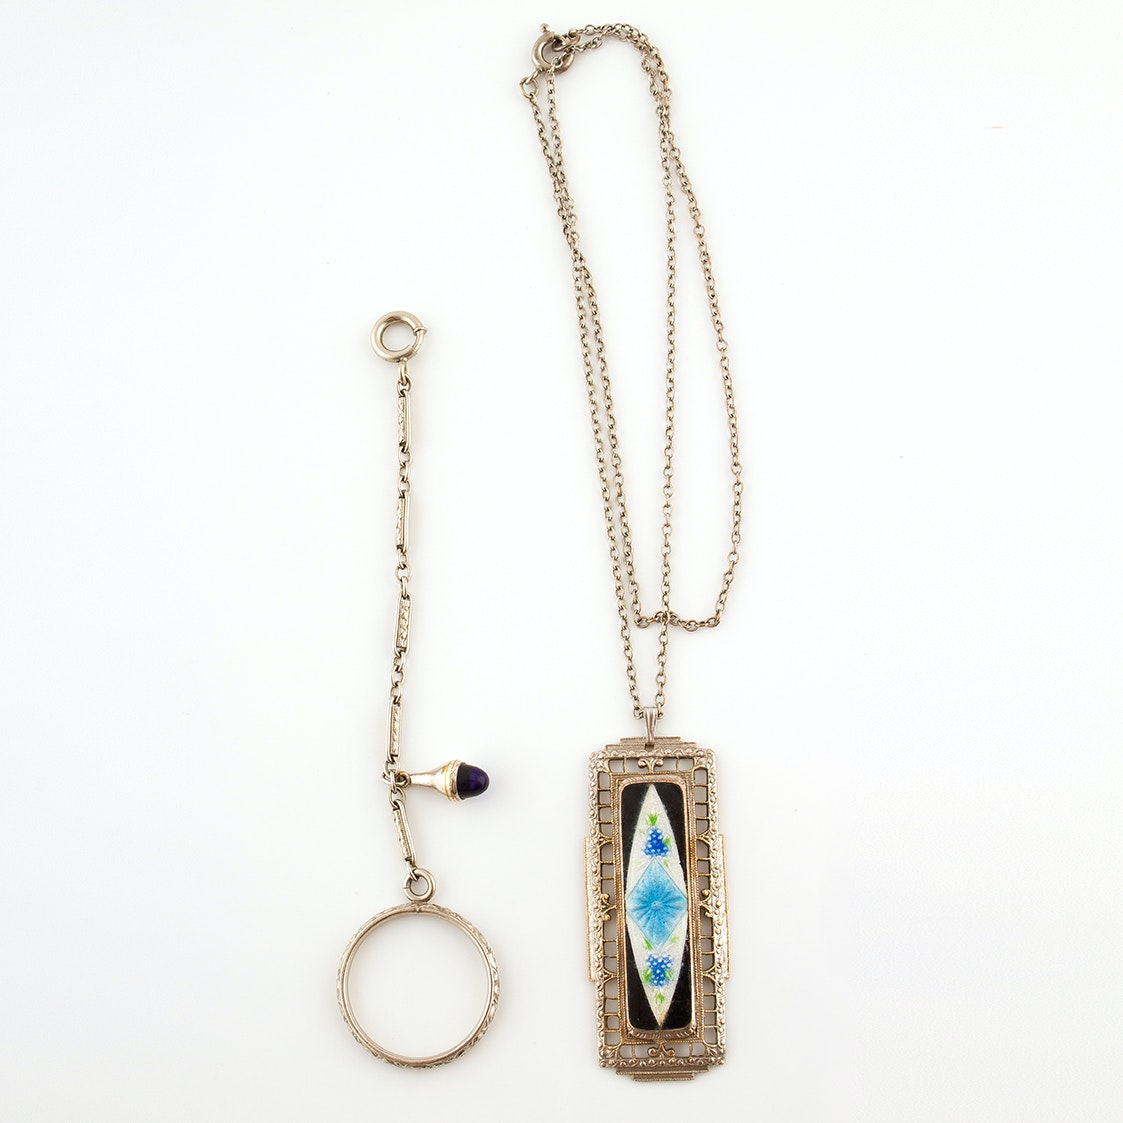 Art Deco Pendant Necklace with Basse-Taille Enamel and Hanky Ring, Circa 1890s